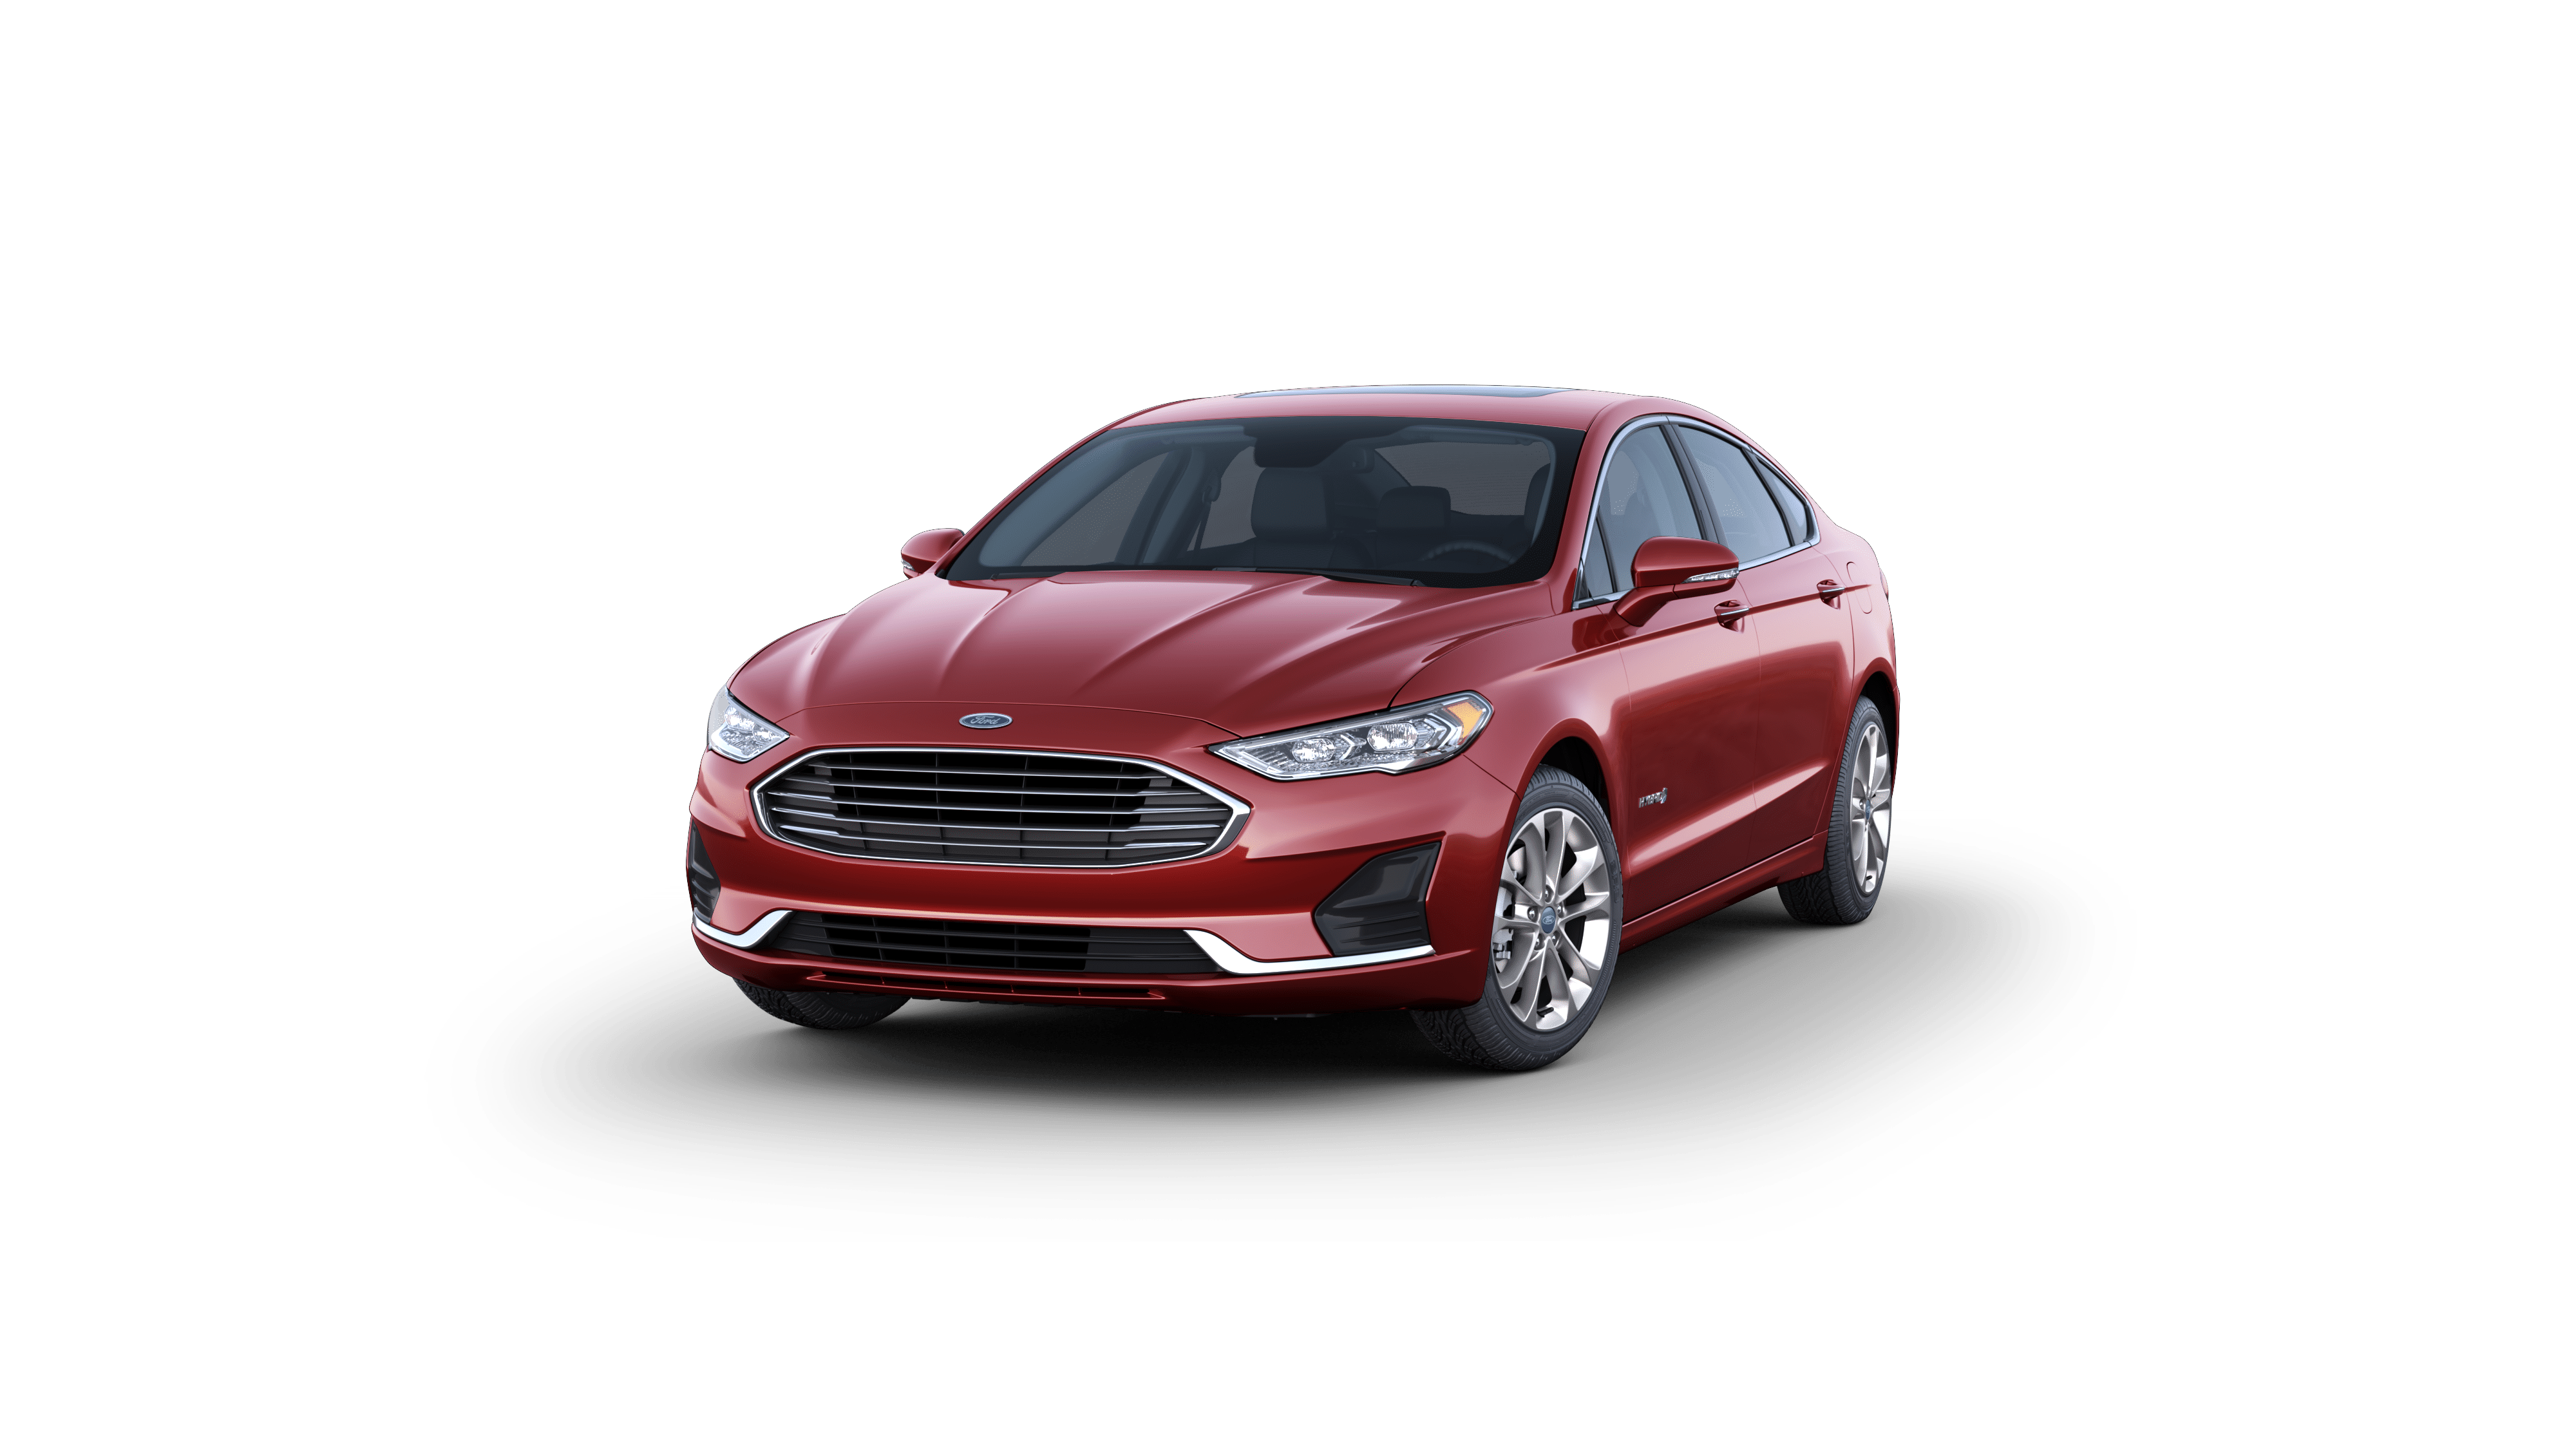 2019 Ford Fusion Hybrid for sale in Natrona Heights - 3FA6P0MU7KR112757 -  Cochran Ford